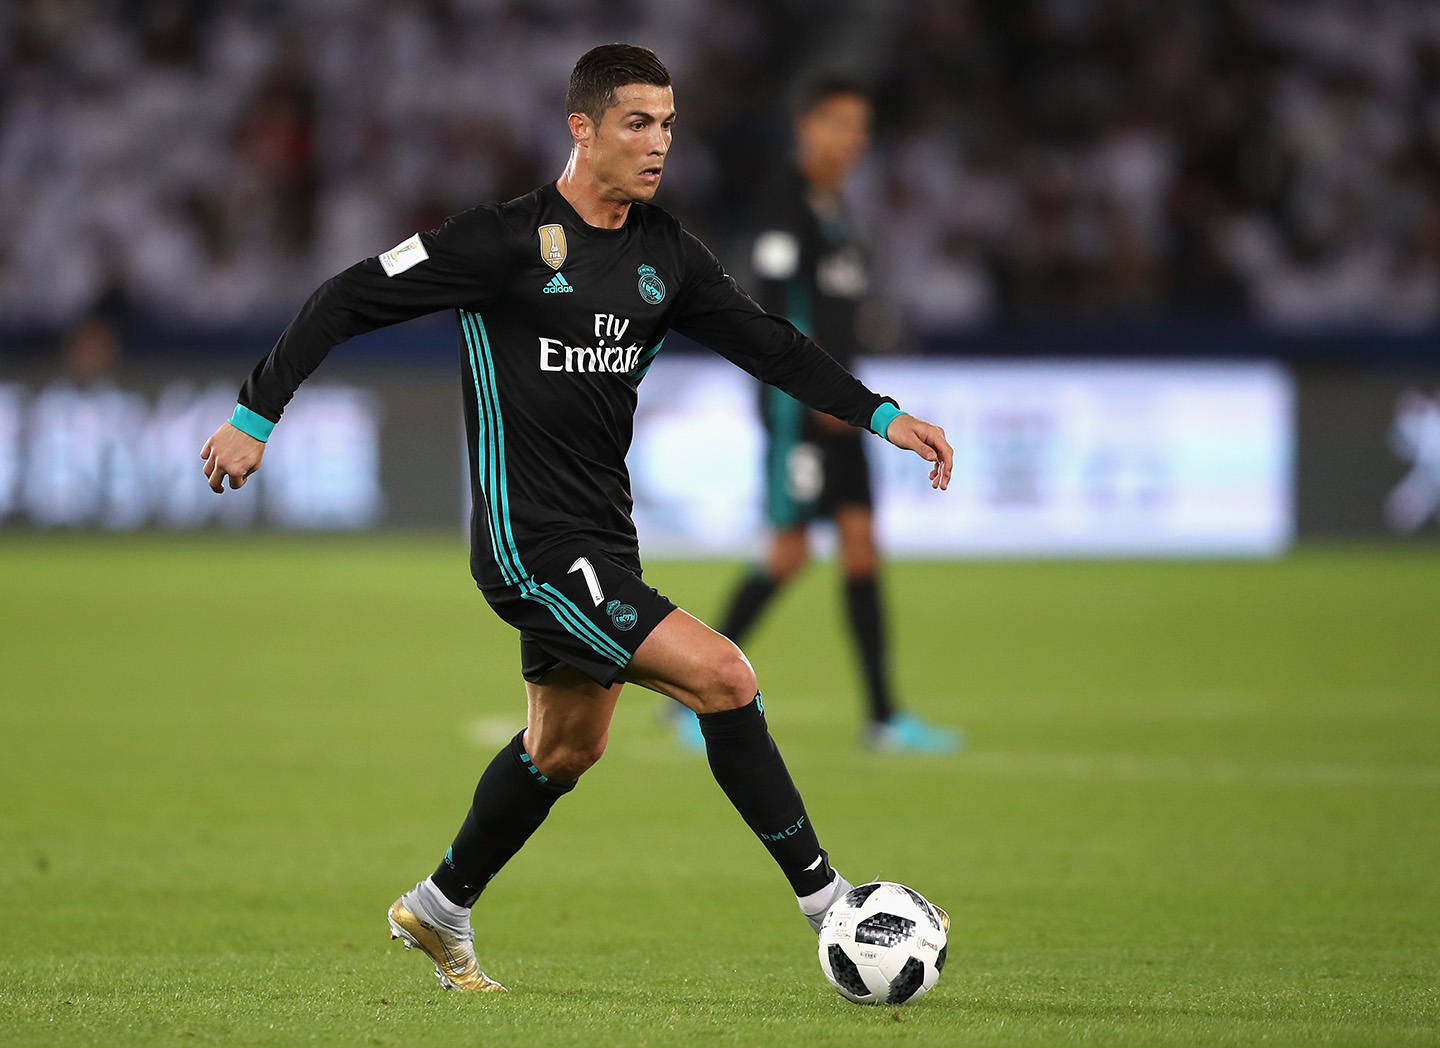 Cristiano Ronaldo is the highest paid athlete in the world. He makes $58 million through salary and winnings and $35 million through endorsements.(Photo by Francois Nel/Getty Images)